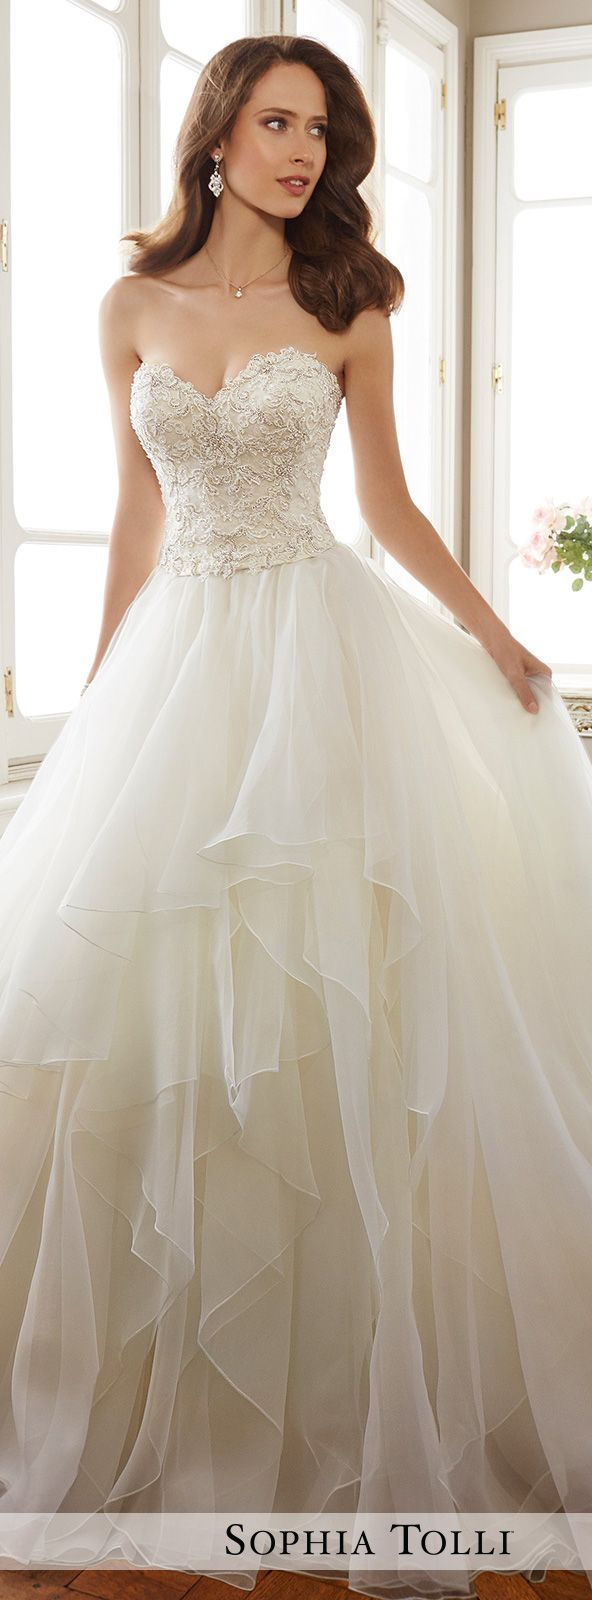 styles of wedding dresses - gown